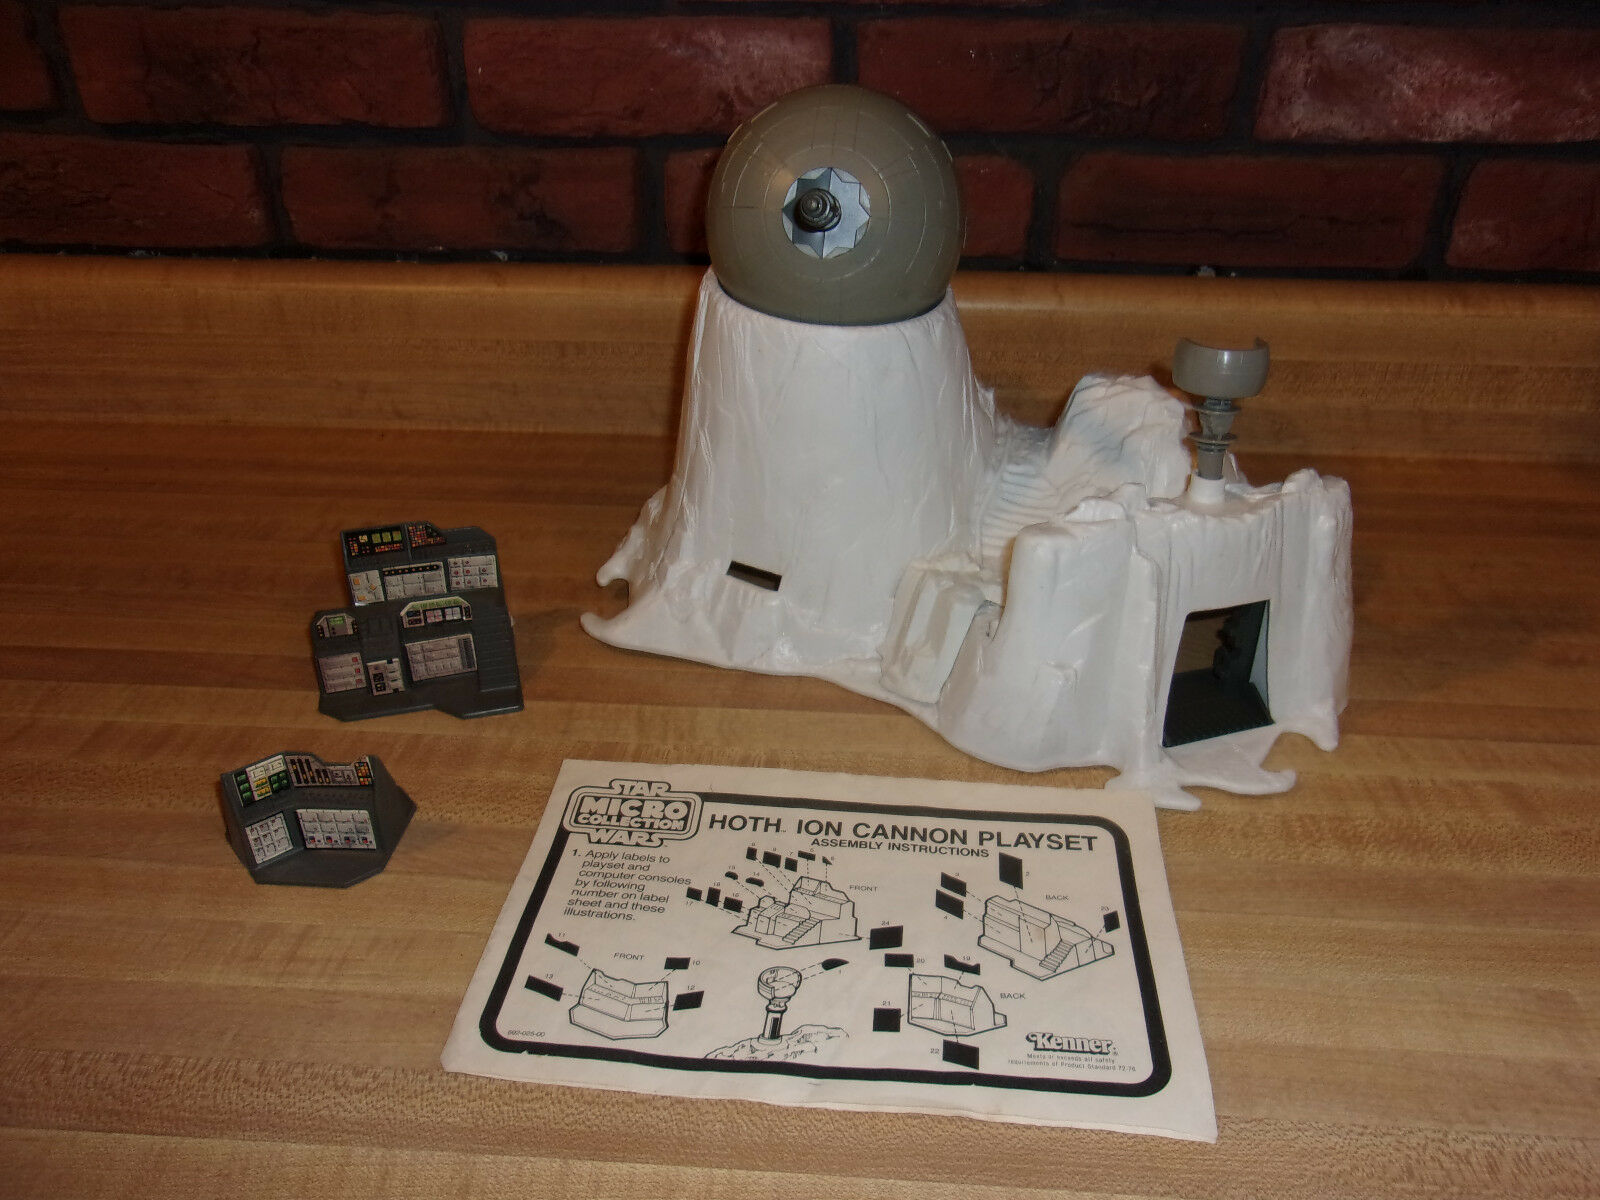 Star Wars Vintage 1982 Micro Hoth Ion Cannon with Directions